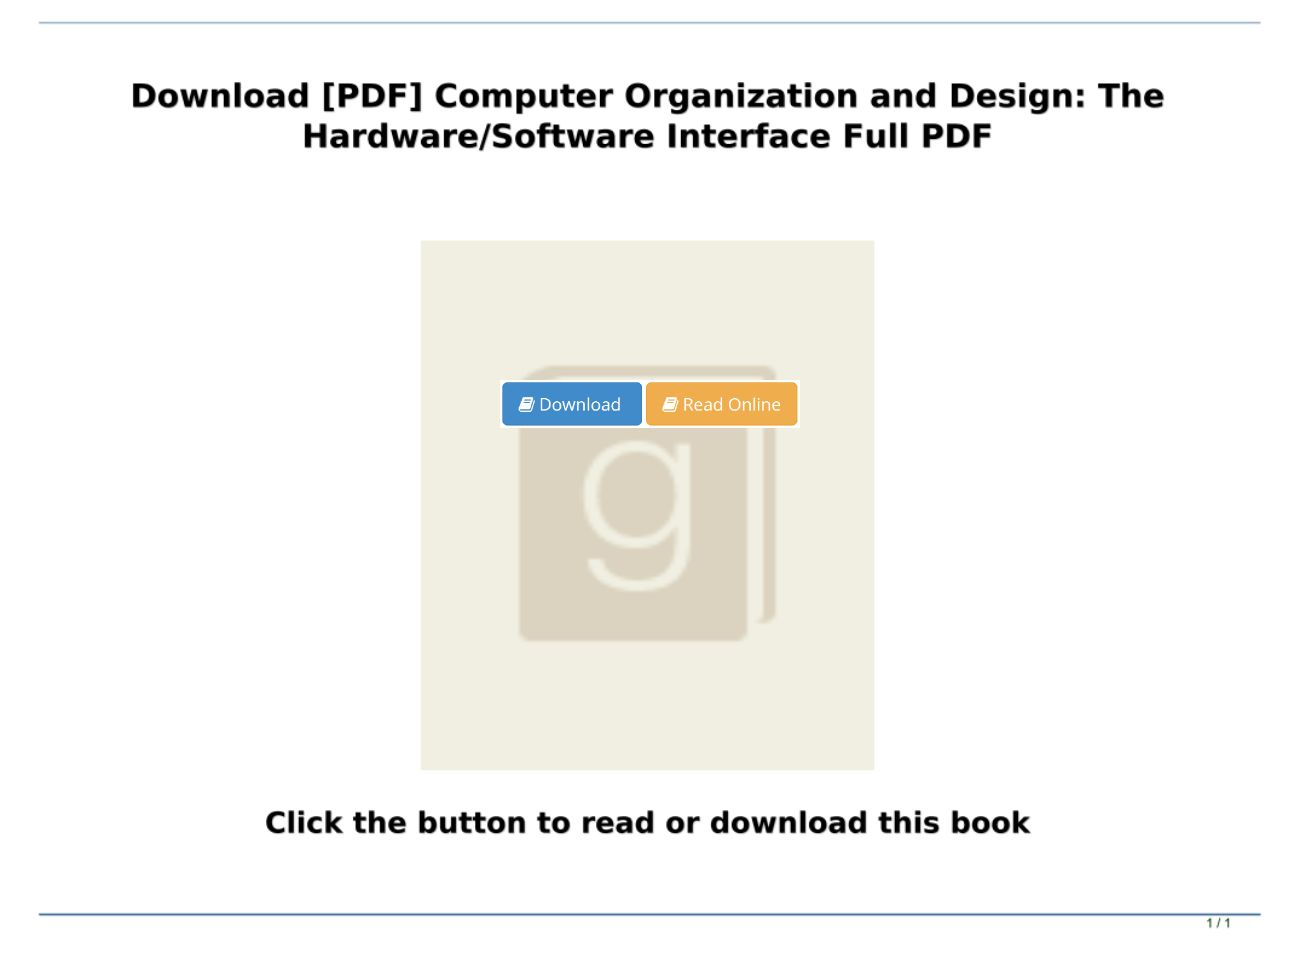 Download Pdf Computer Organization And Design The Hardware Software Interface Full Pdf Text Images Music Video Glogster Edu Interactive Multimedia Posters